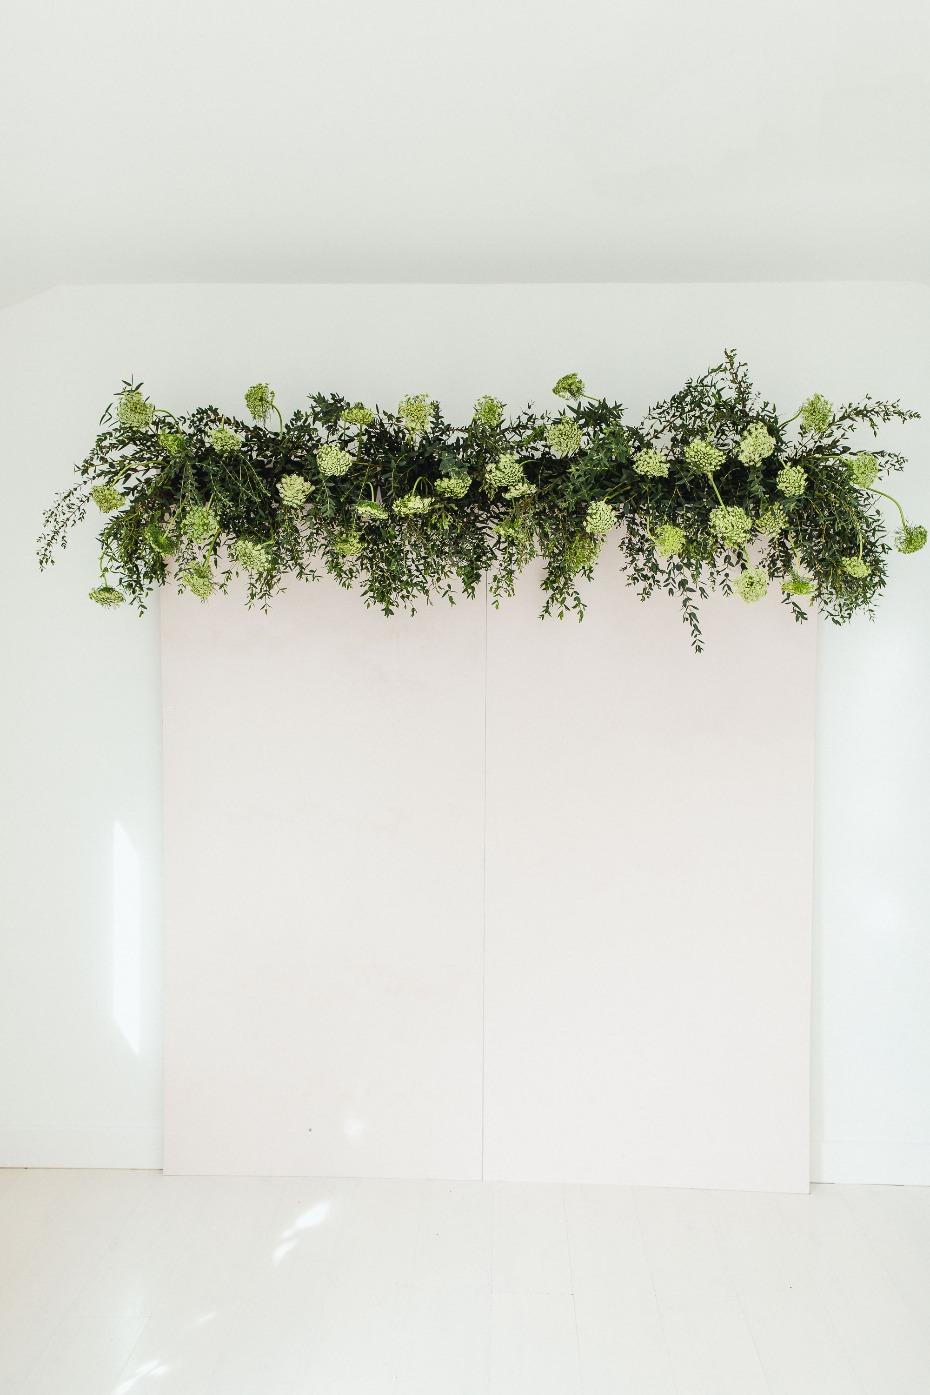 How to make a floral backdrop wall